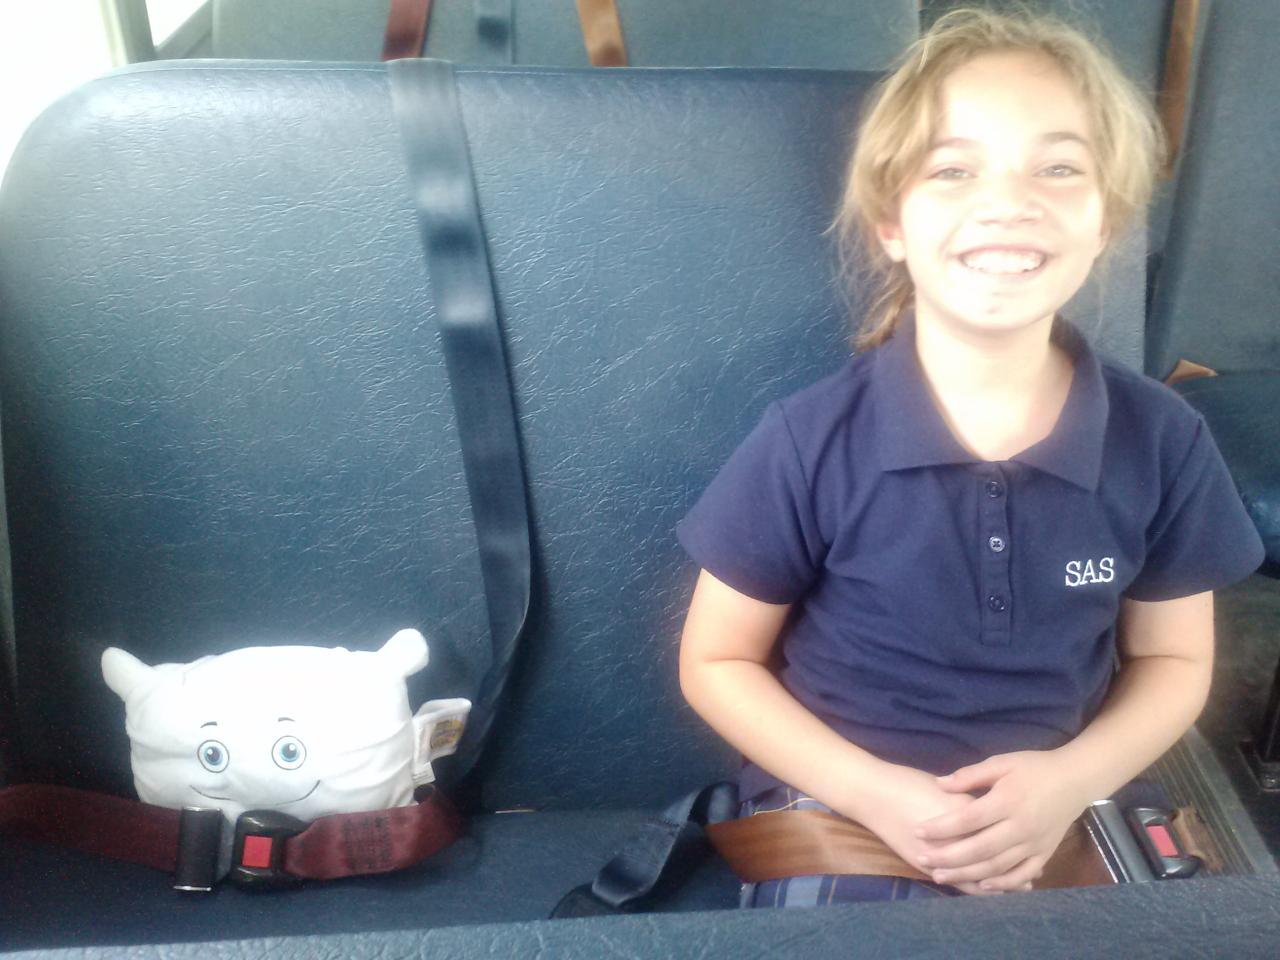 Buckled in and ready to go to school